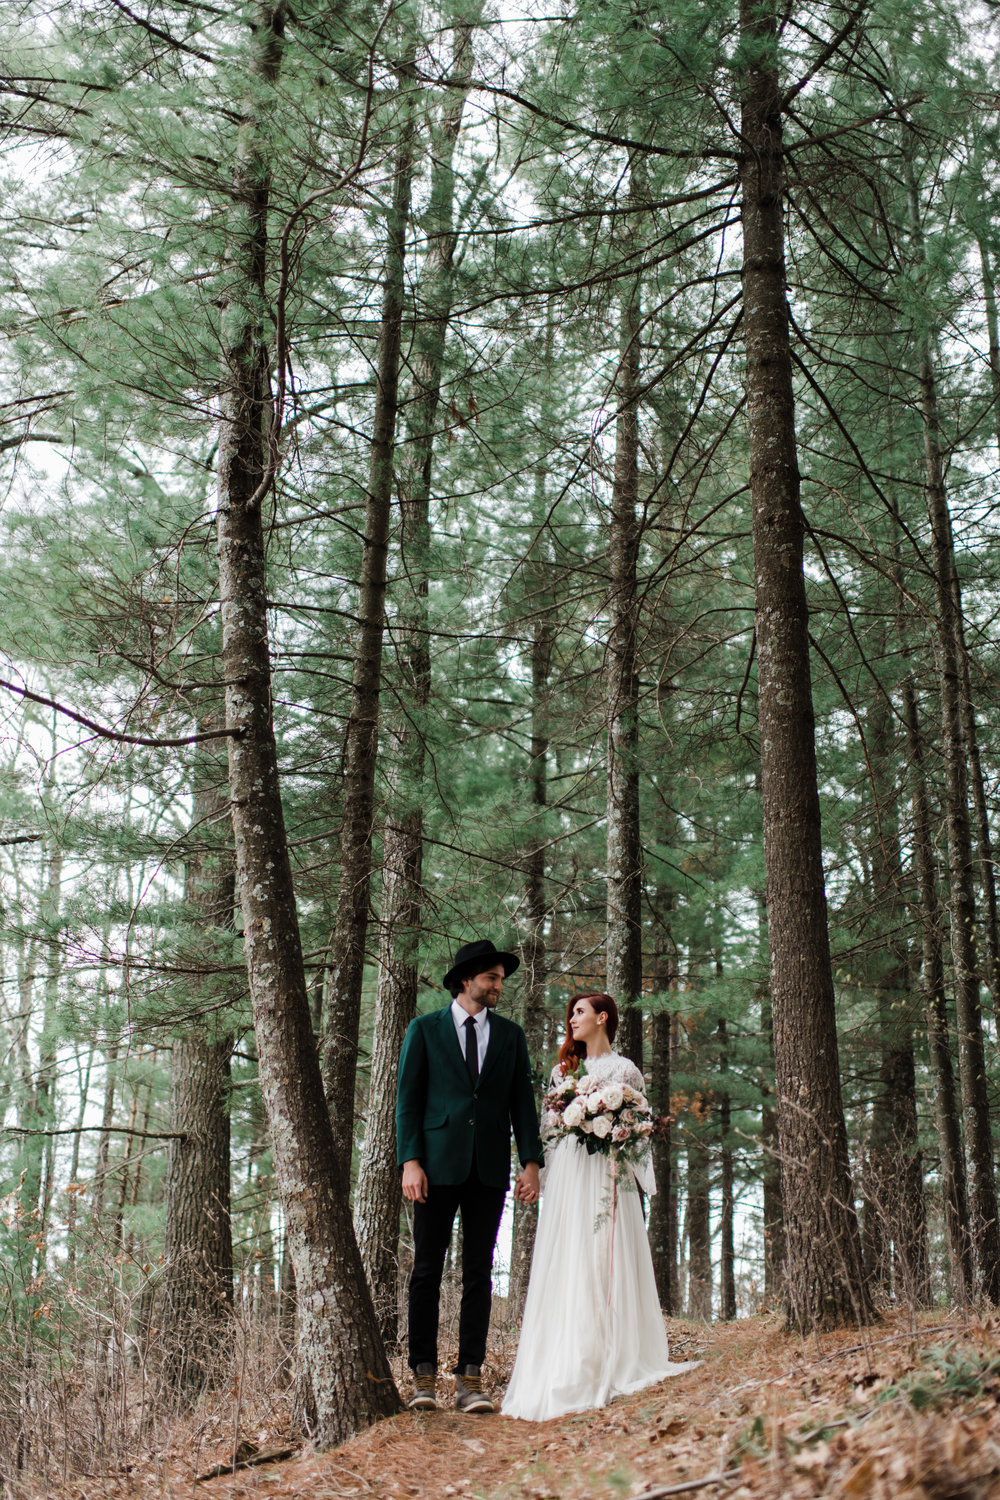 Couple wearing wedding attire holding hands and looking into each other's eyes in the Northwoods of Wisconsin.